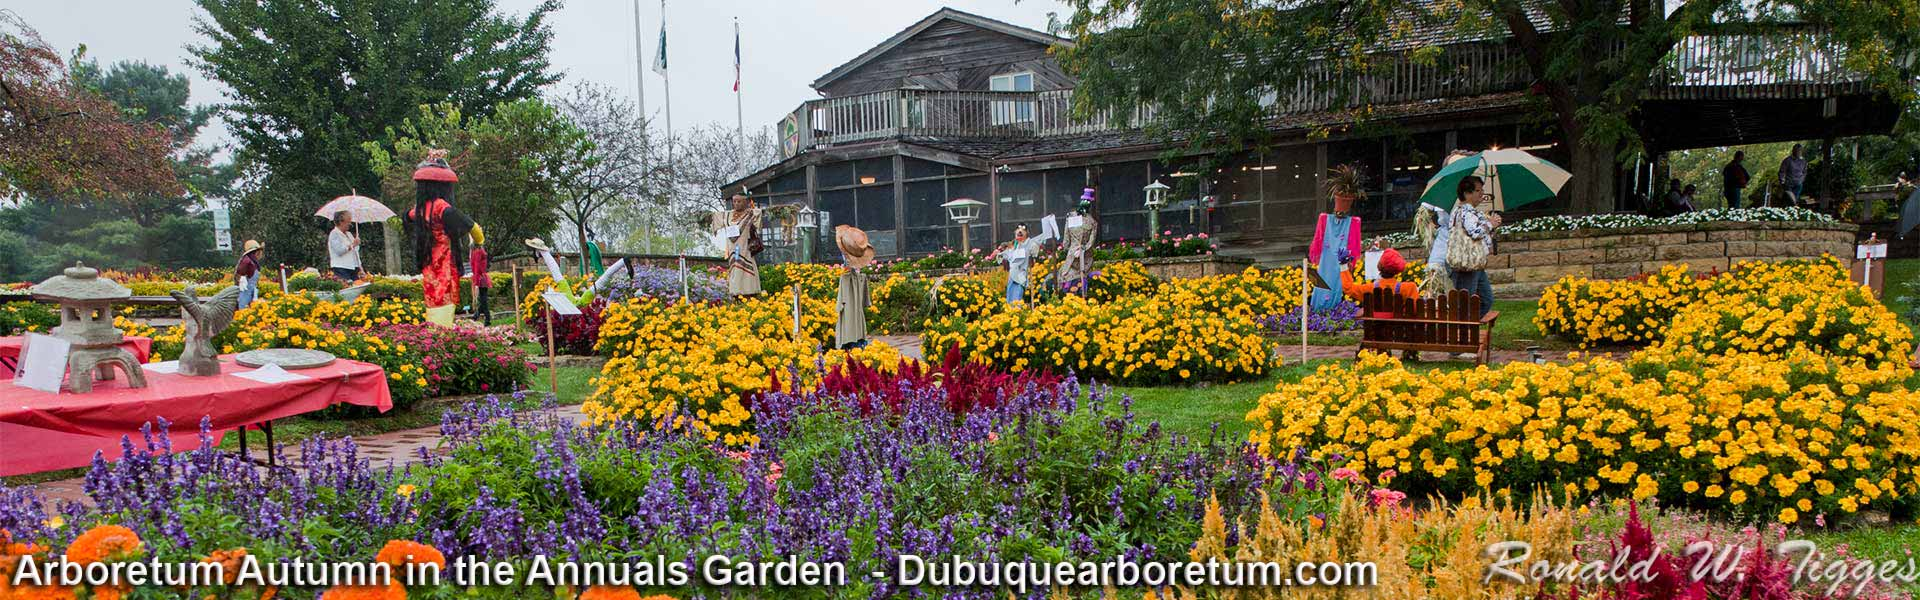 Gardens fans and friends of the dubuque arboretum - Dubuque arboretum and botanical gardens ...